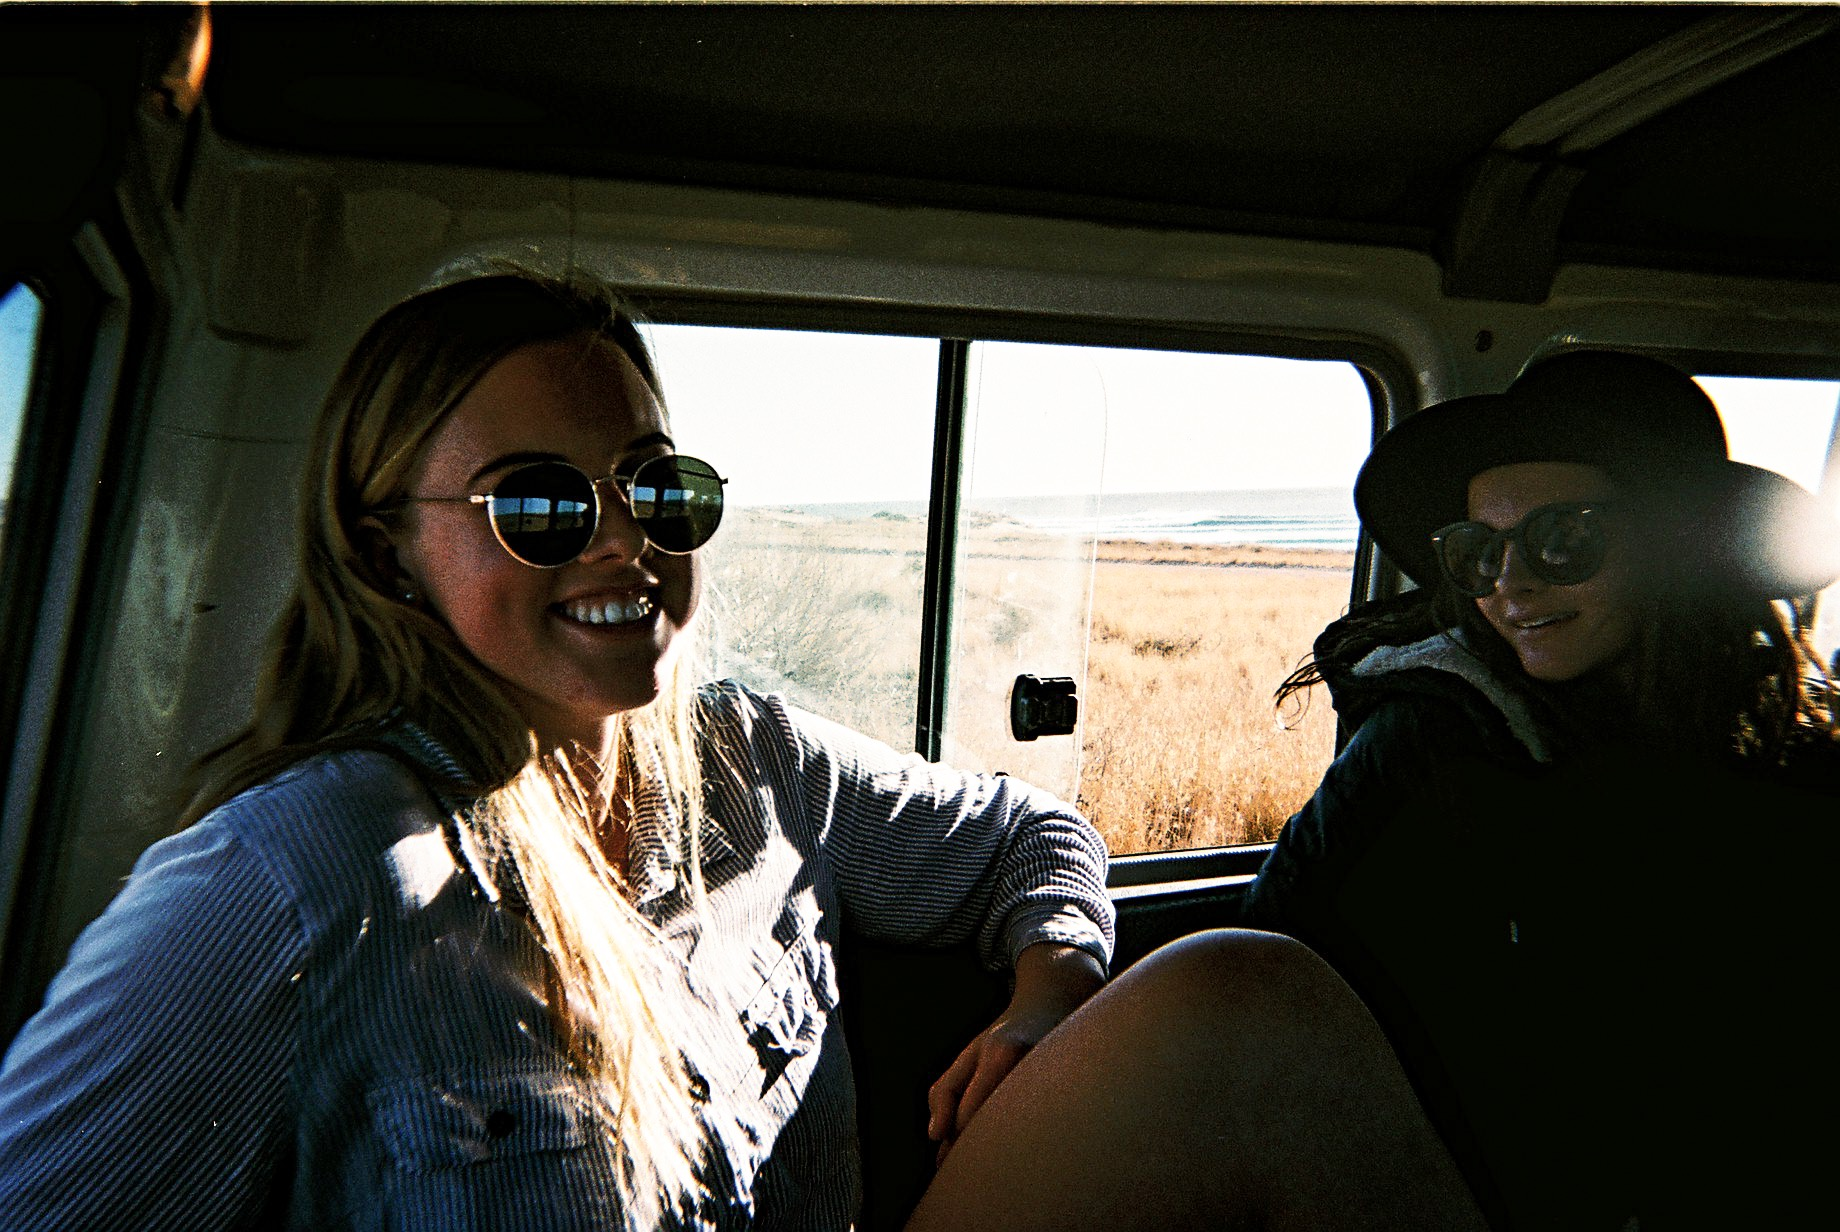 #35mm disposable // Travelling in the Toyota personnel carrier in this kind of arid terrain had seriously strong resemblances to an African safari- the only difference was we were chasing wild goats instead of lions and cheetahs. @livmickle @kalaniscott_